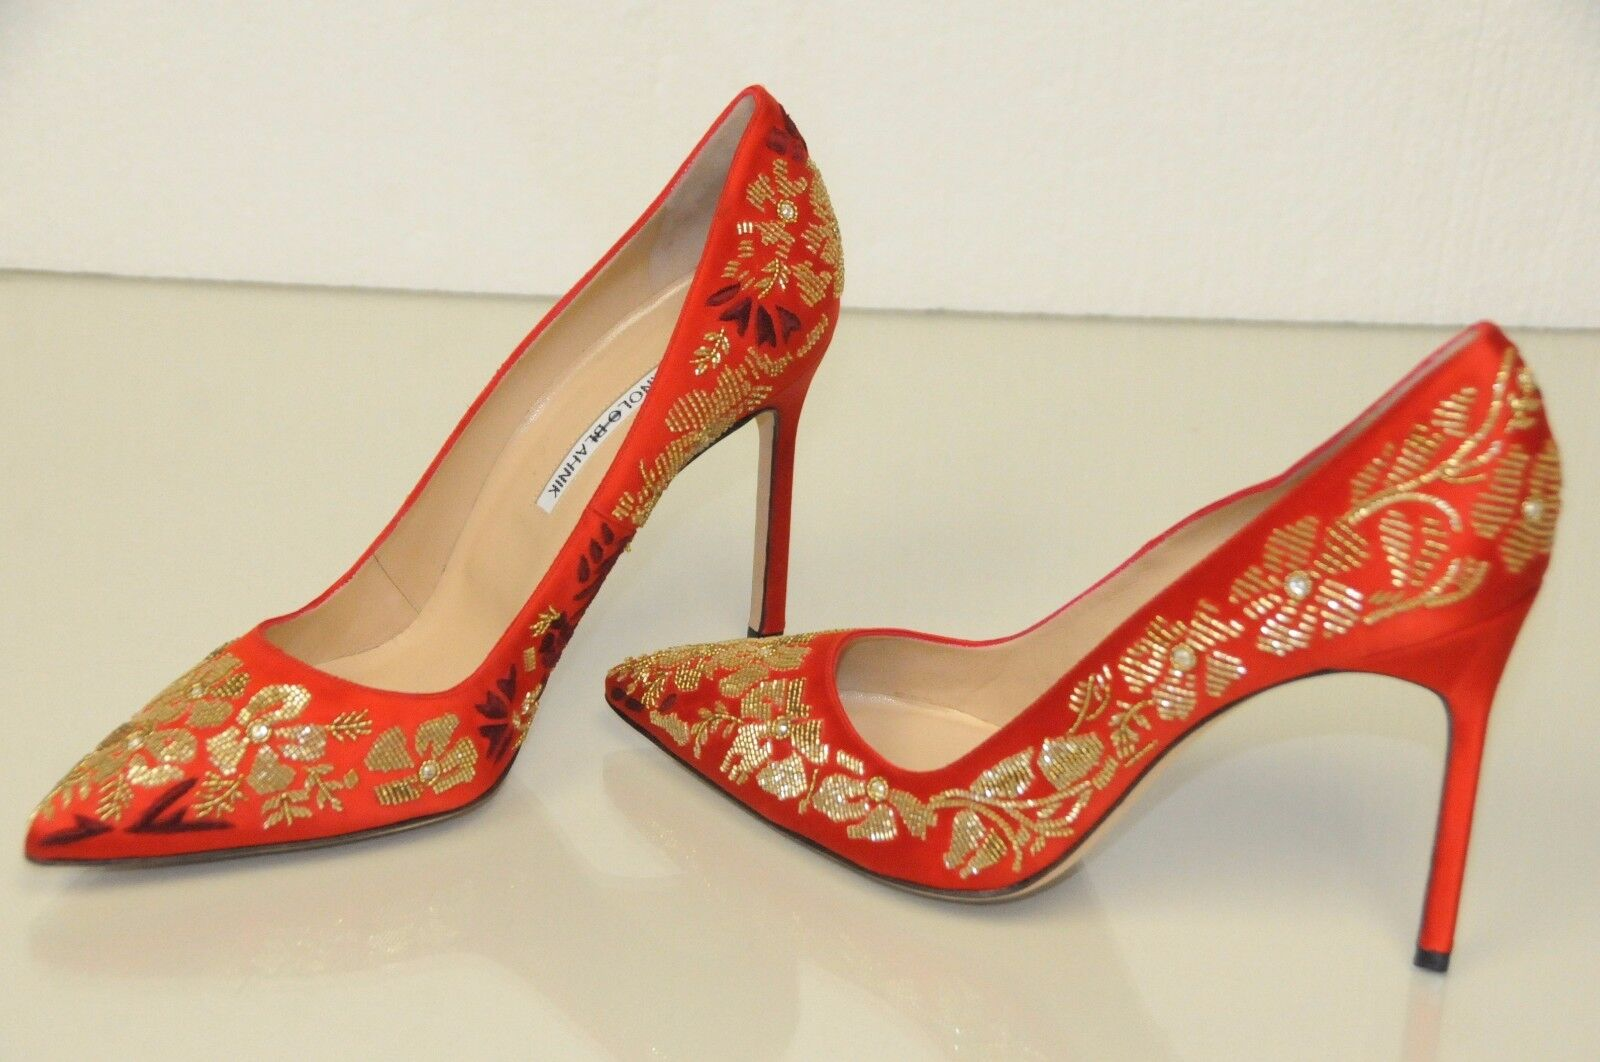 925 New Manolo Blahnik BB 105 Embroidery rot Satin schuhe Pumps 40 41.5 wedding